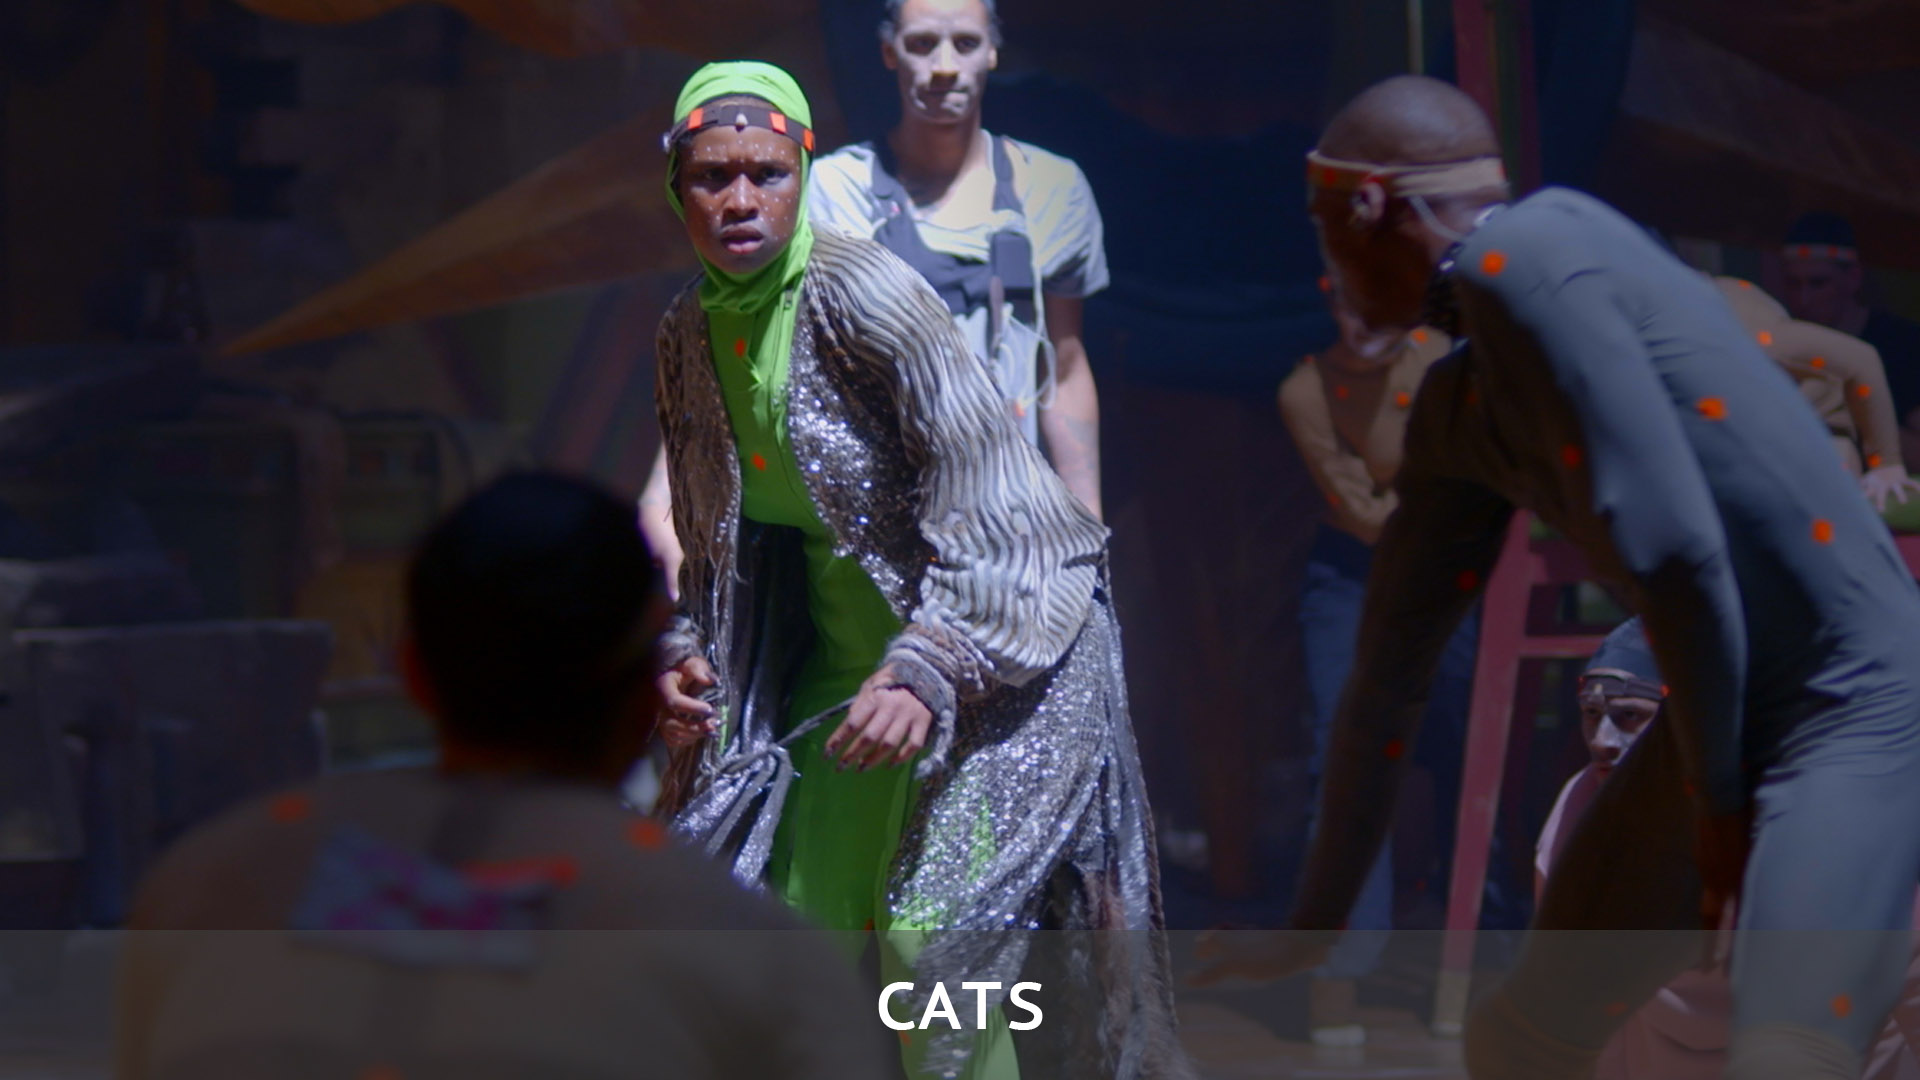 Cats - Color Grading / Color Correction / Post Production